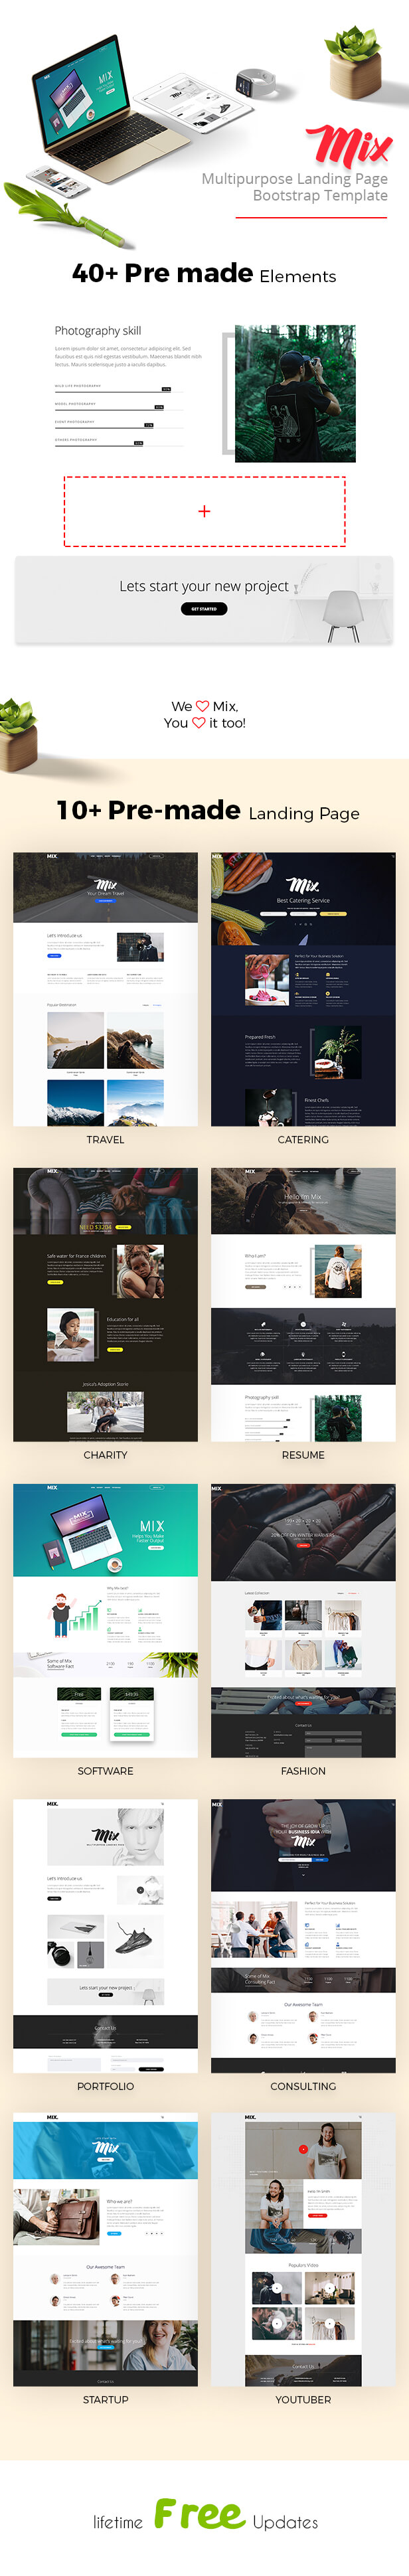 Mix Multipurpose-Consultancy, Travel, Startup, Software, Charity, Catering, CV, Creative, Youtuber - 2